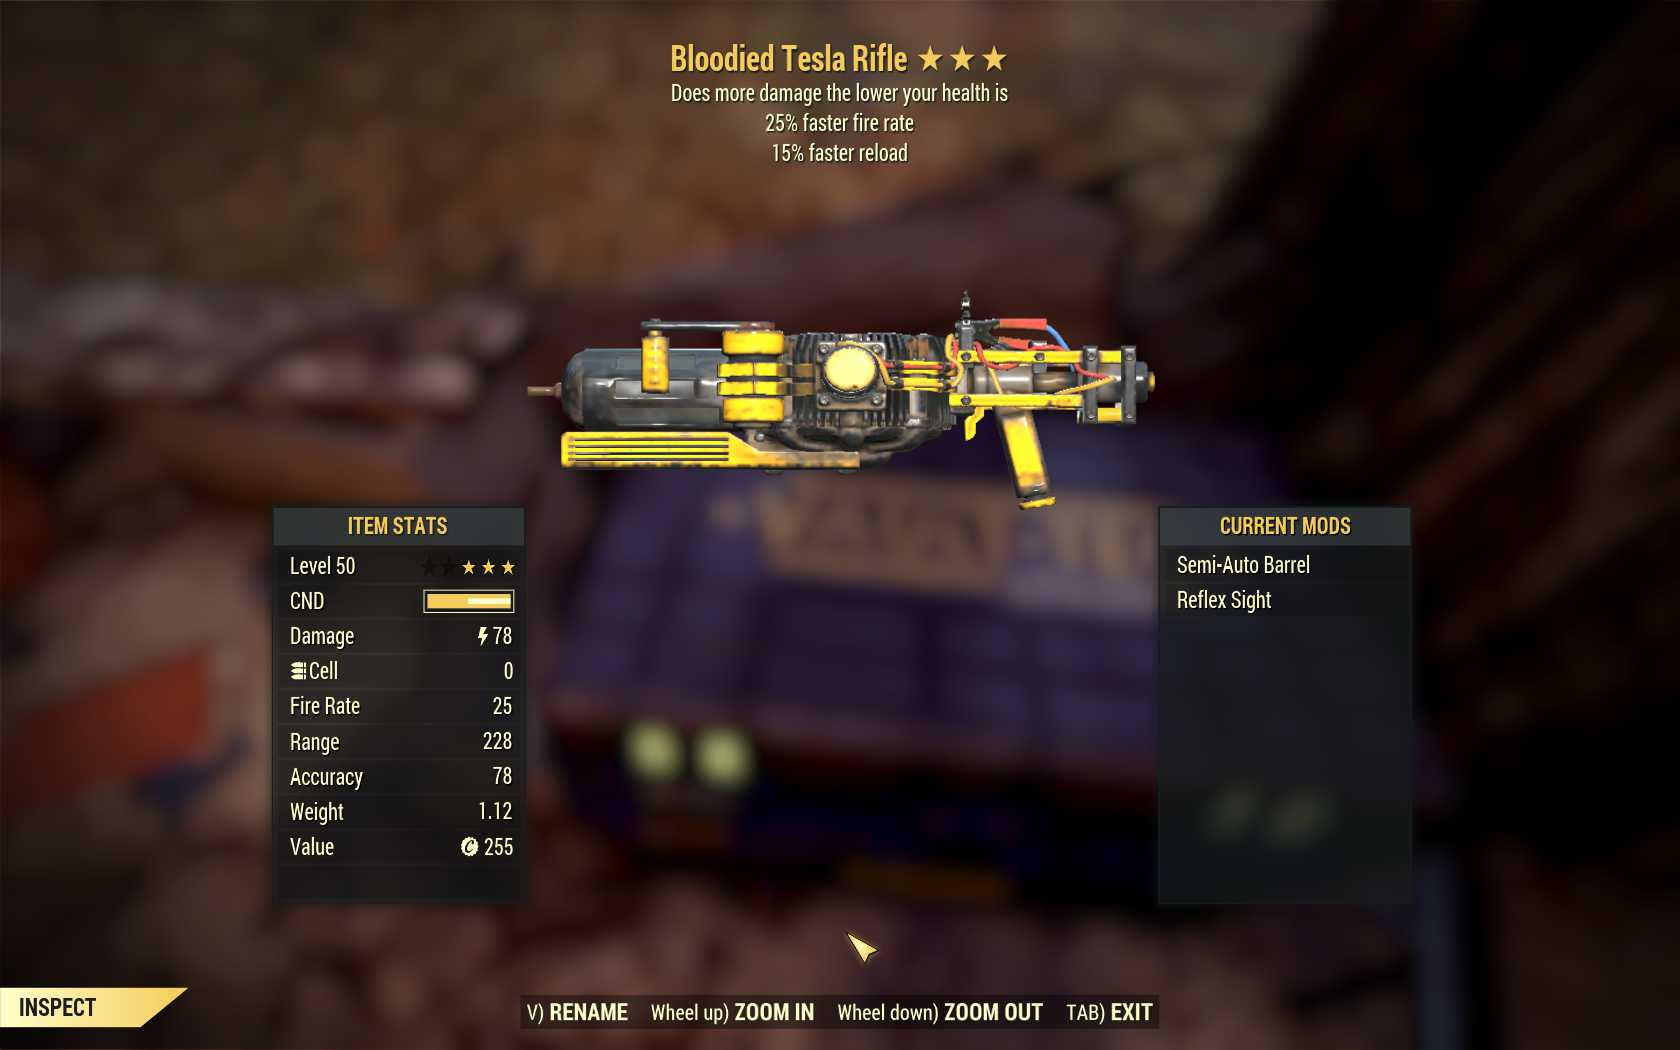 Bloodied Tesla Rifle (25% faster fire rate, 15% faster reload)